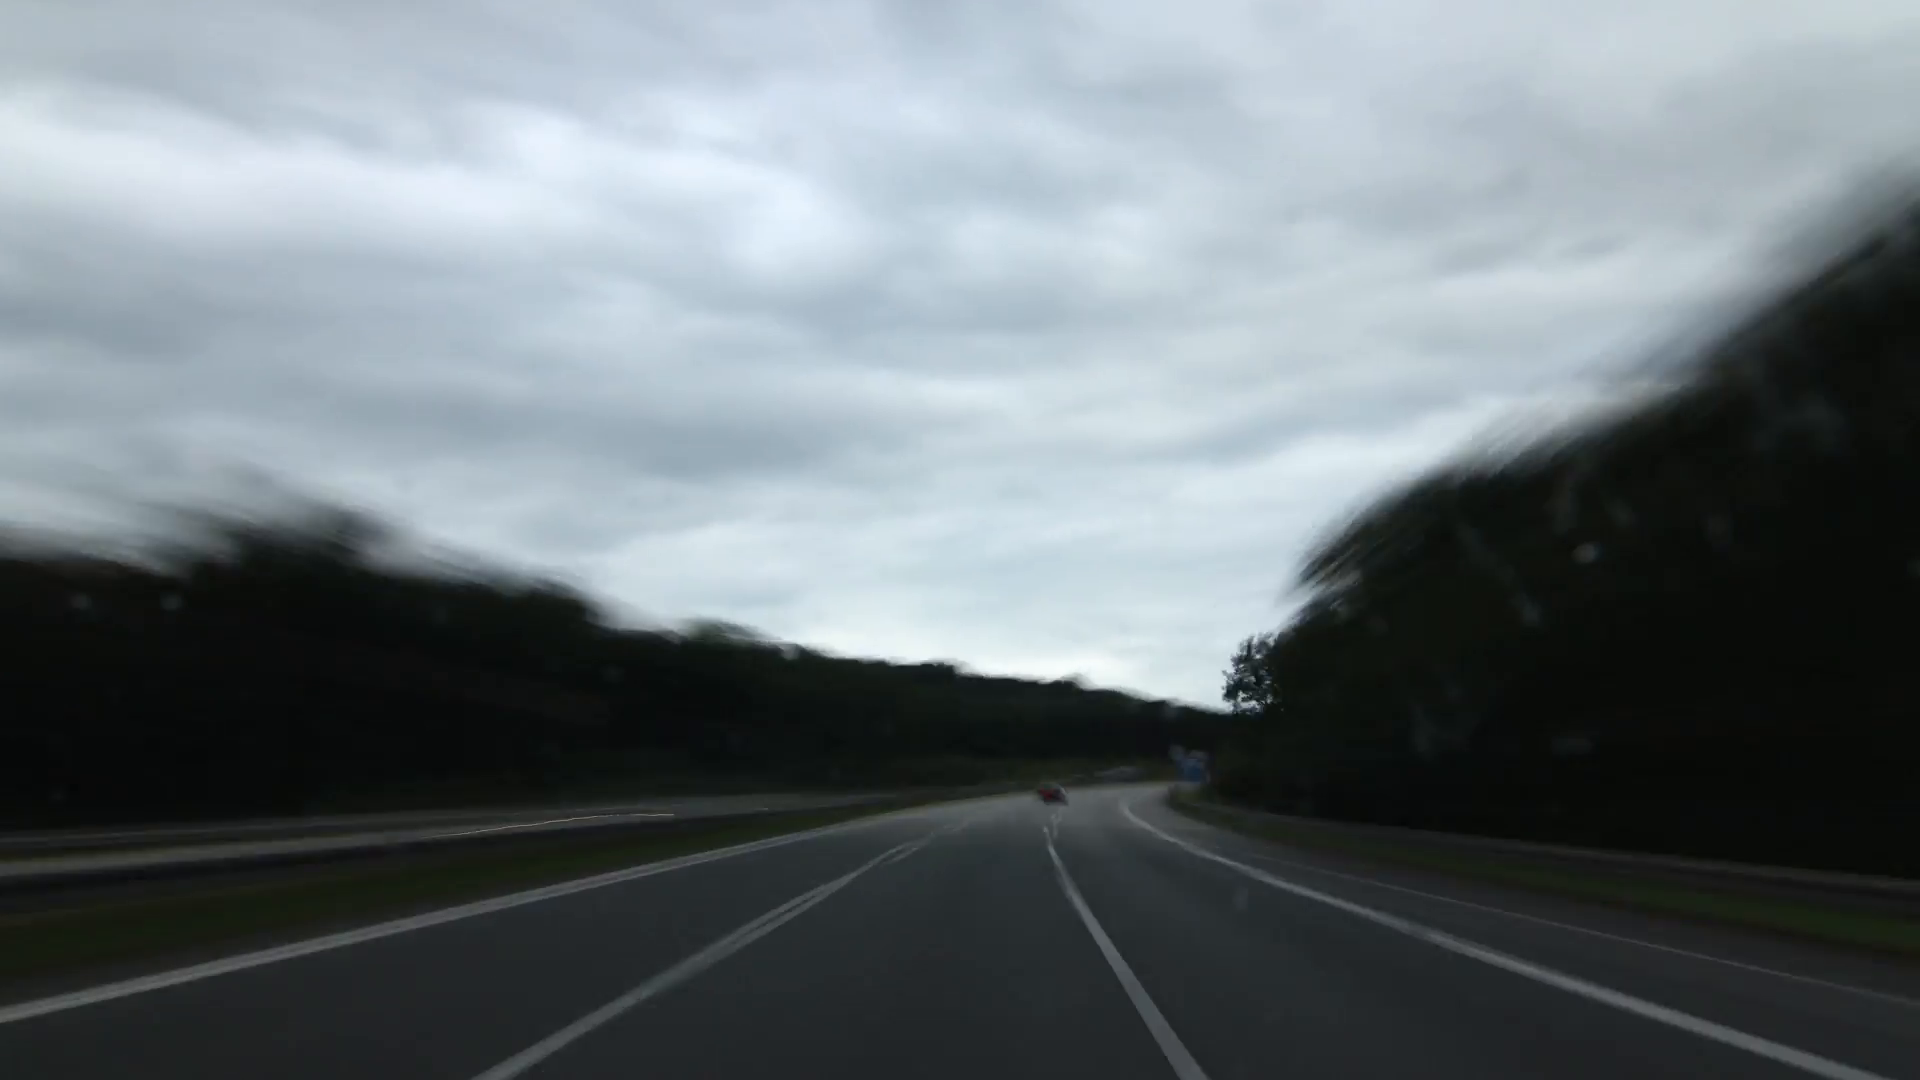 cloudy day road trip 4k time lapse spain Stock Video Footage ...